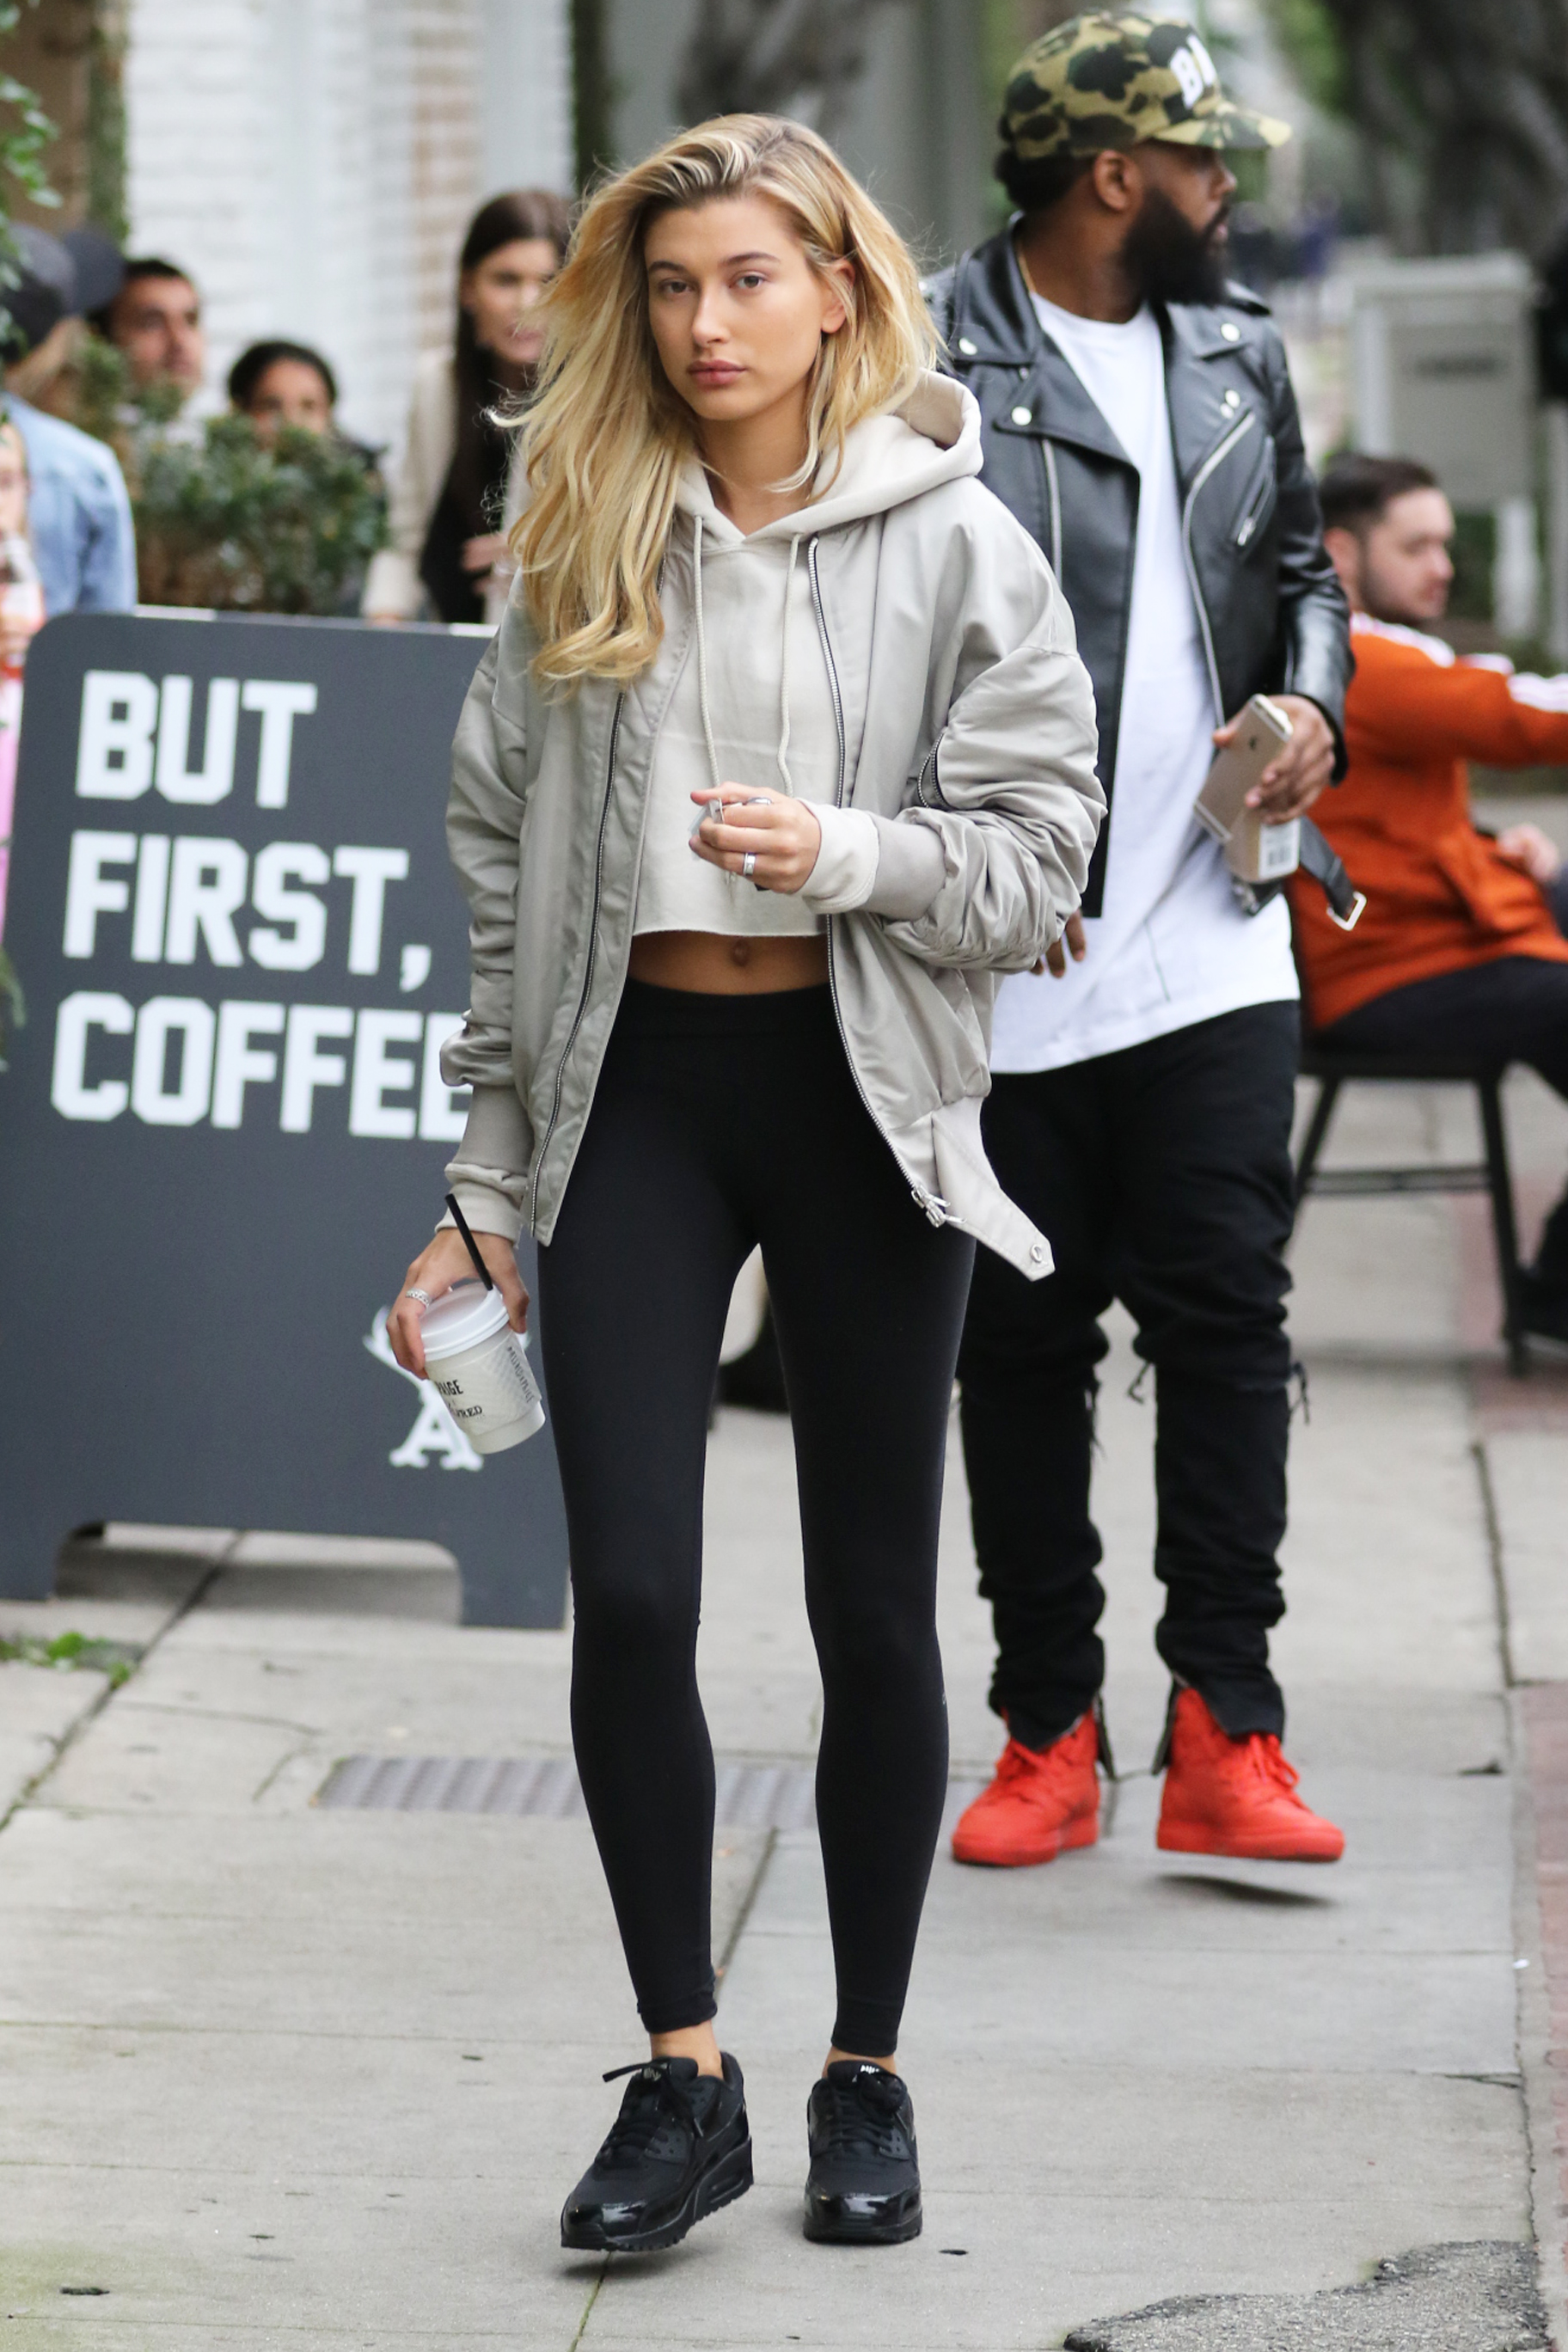 Hailey Baldwin grabs coffee at Alfred before shopping at Maxfield in West Hollywood. Pictured: Hailey Baldwin Ref: SPL1210725 180116 Picture by: LA Photo Lab / Splash News Splash News and Pictures Los Angeles:310-821-2666 New York: 212-619-2666 London: 870-934-2666 photodesk@splashnews.com